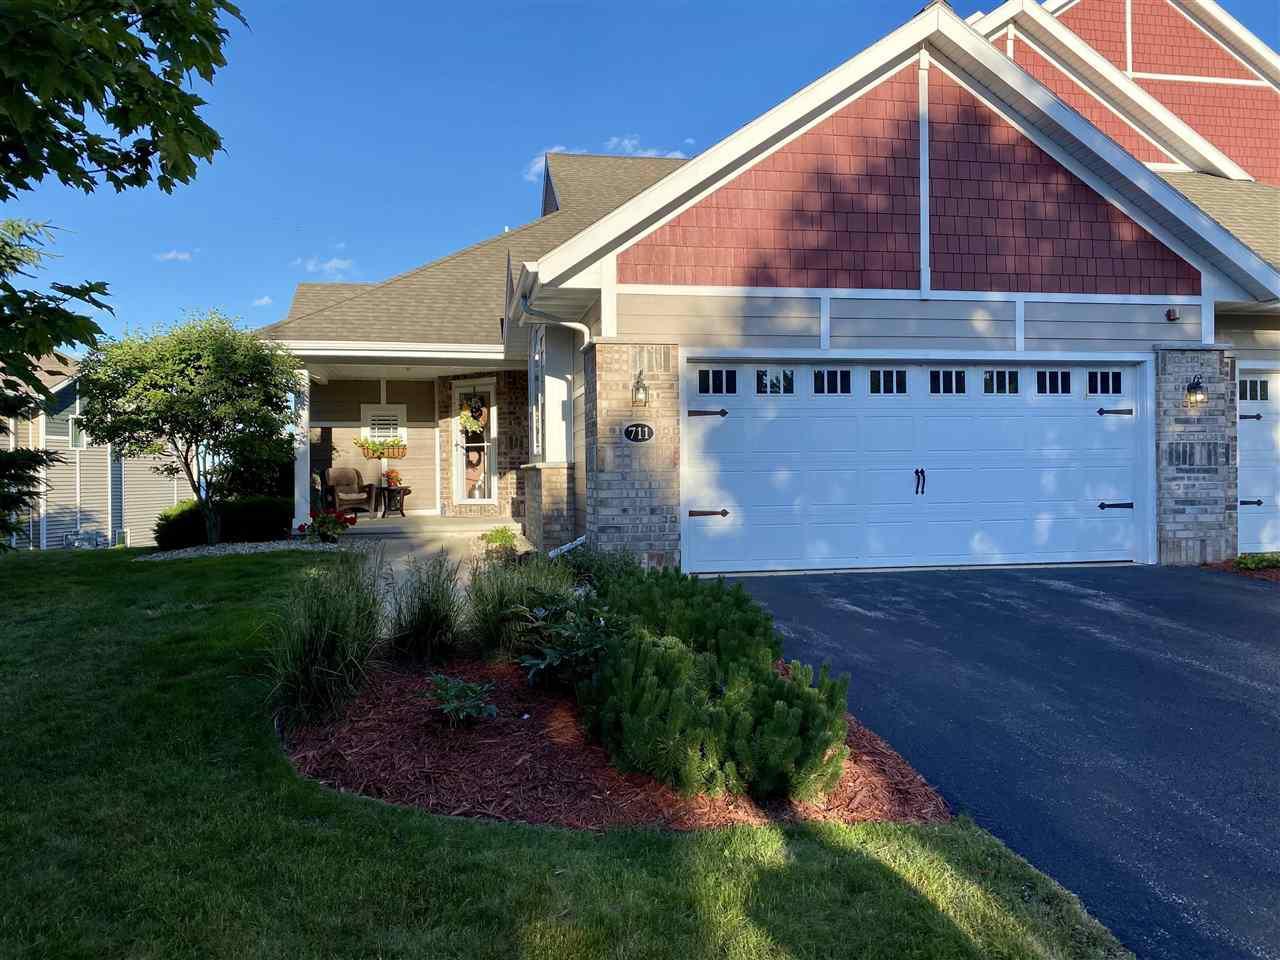 View Condo For Sale at 711 HARBOR TERRACE LANE, Marinette, WI